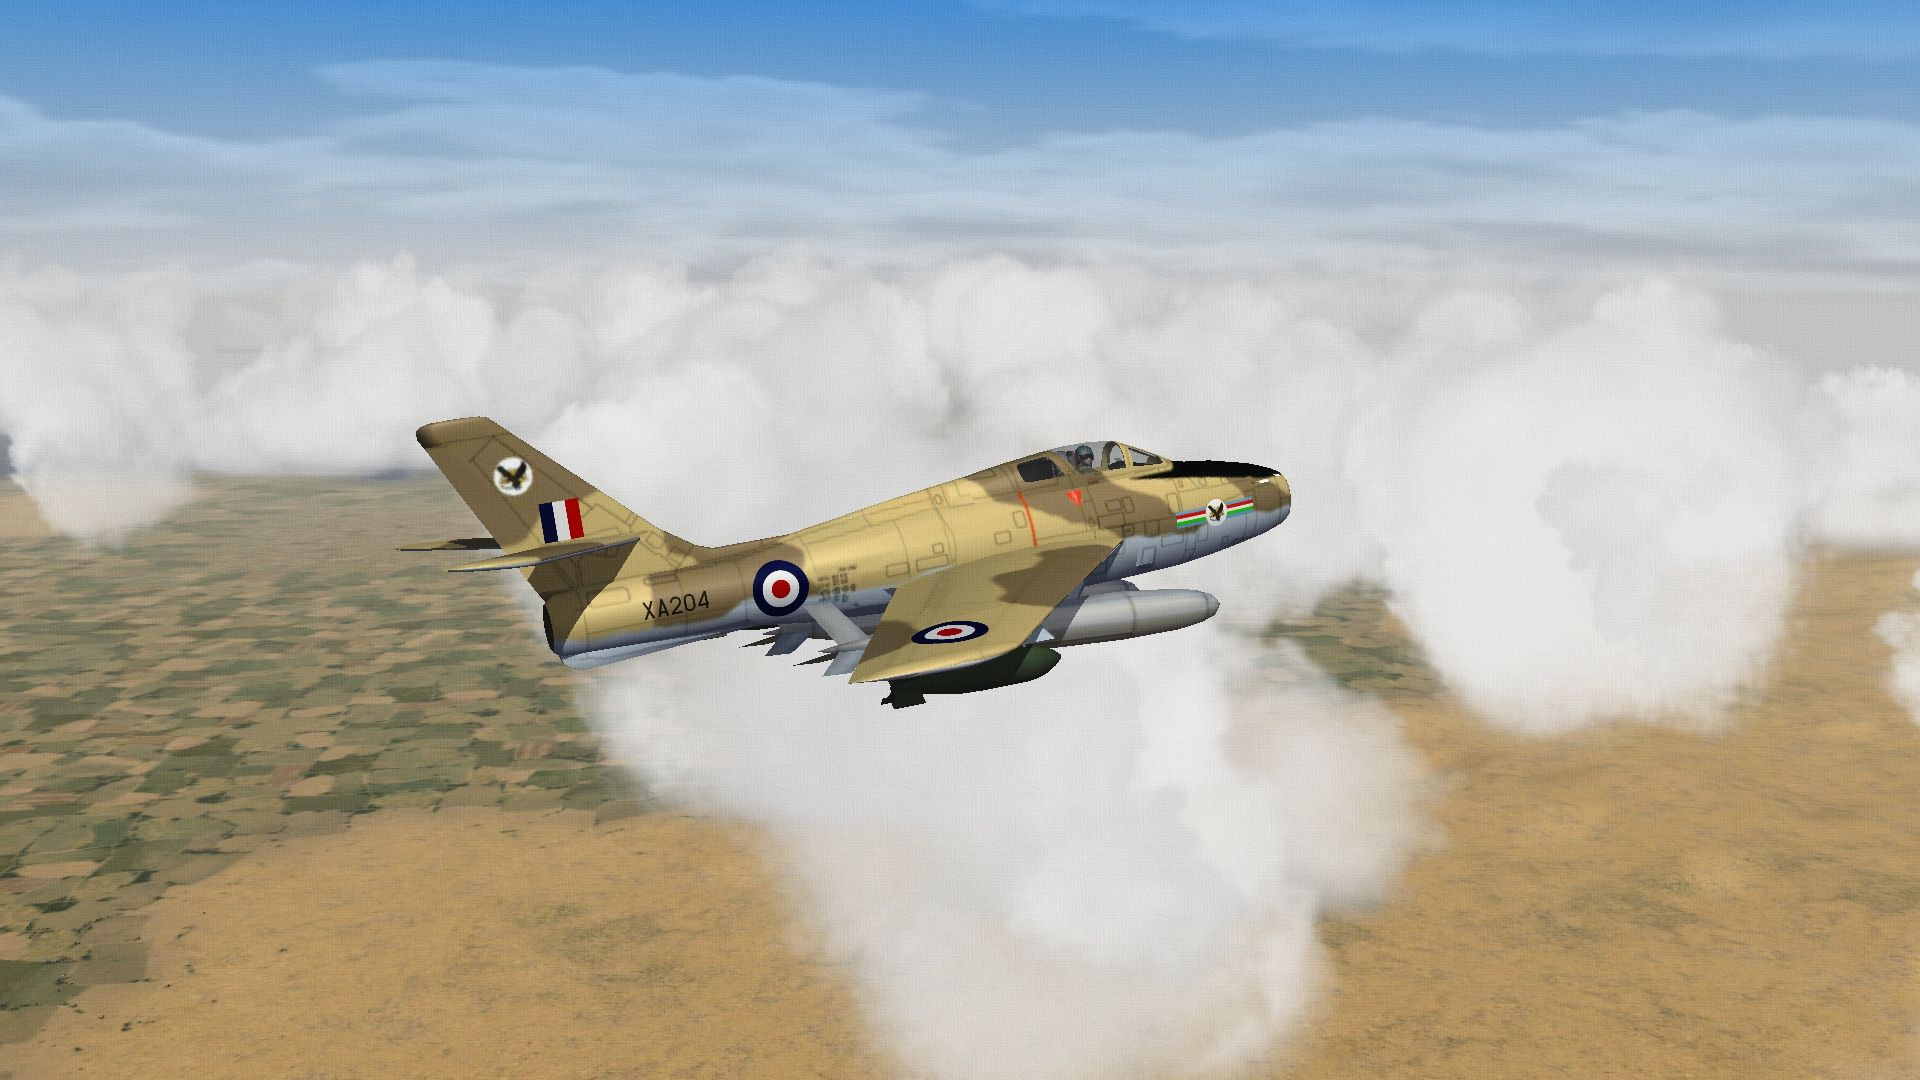 RAF%20THUNDERSTREAK%20FGA1.04_zps7xkrrh7